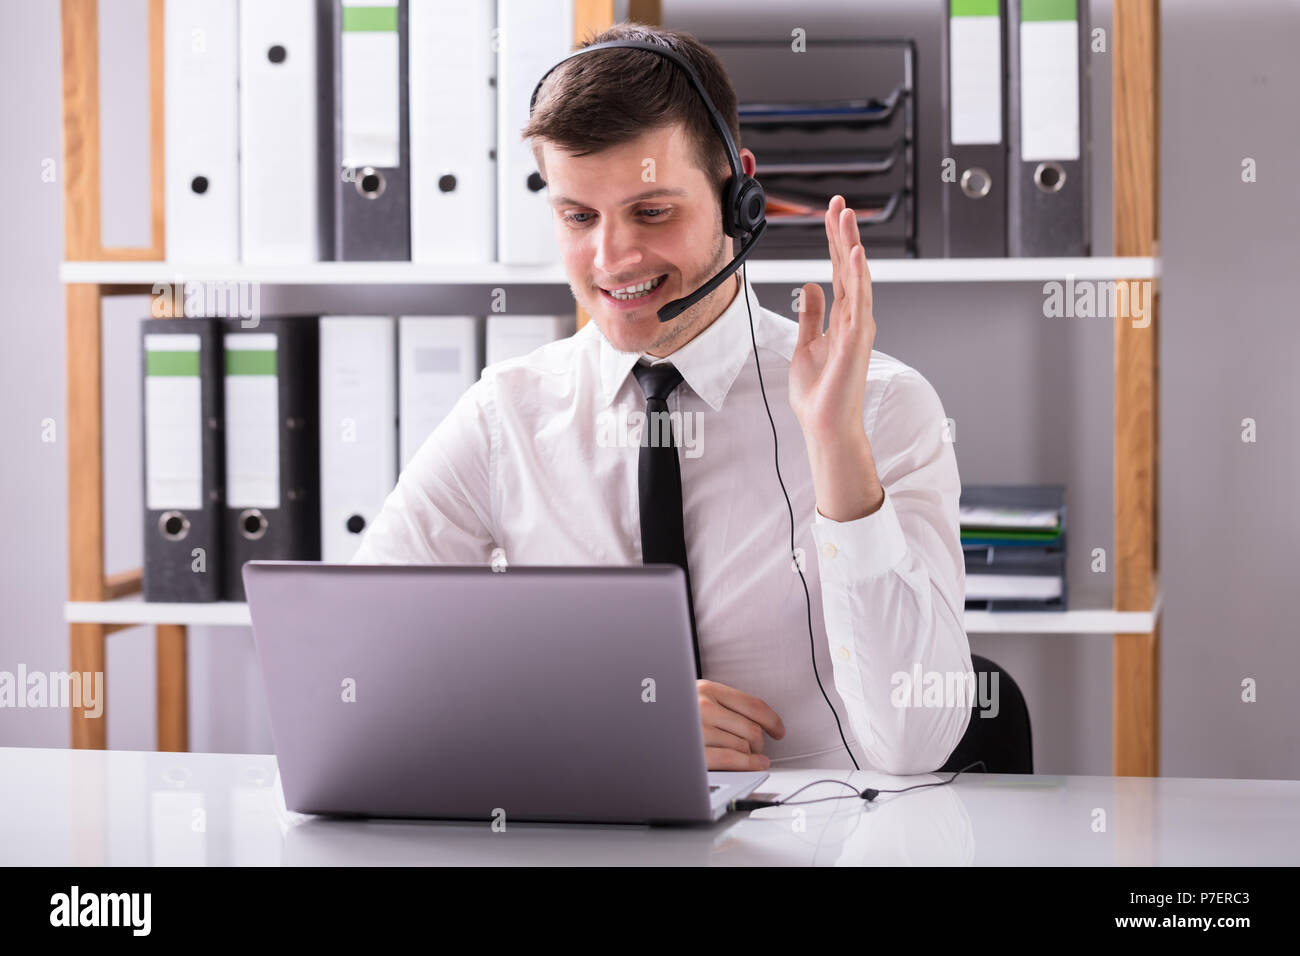 Young Businessman Using Headphone While Working On Laptop At Workplace Stock Photo